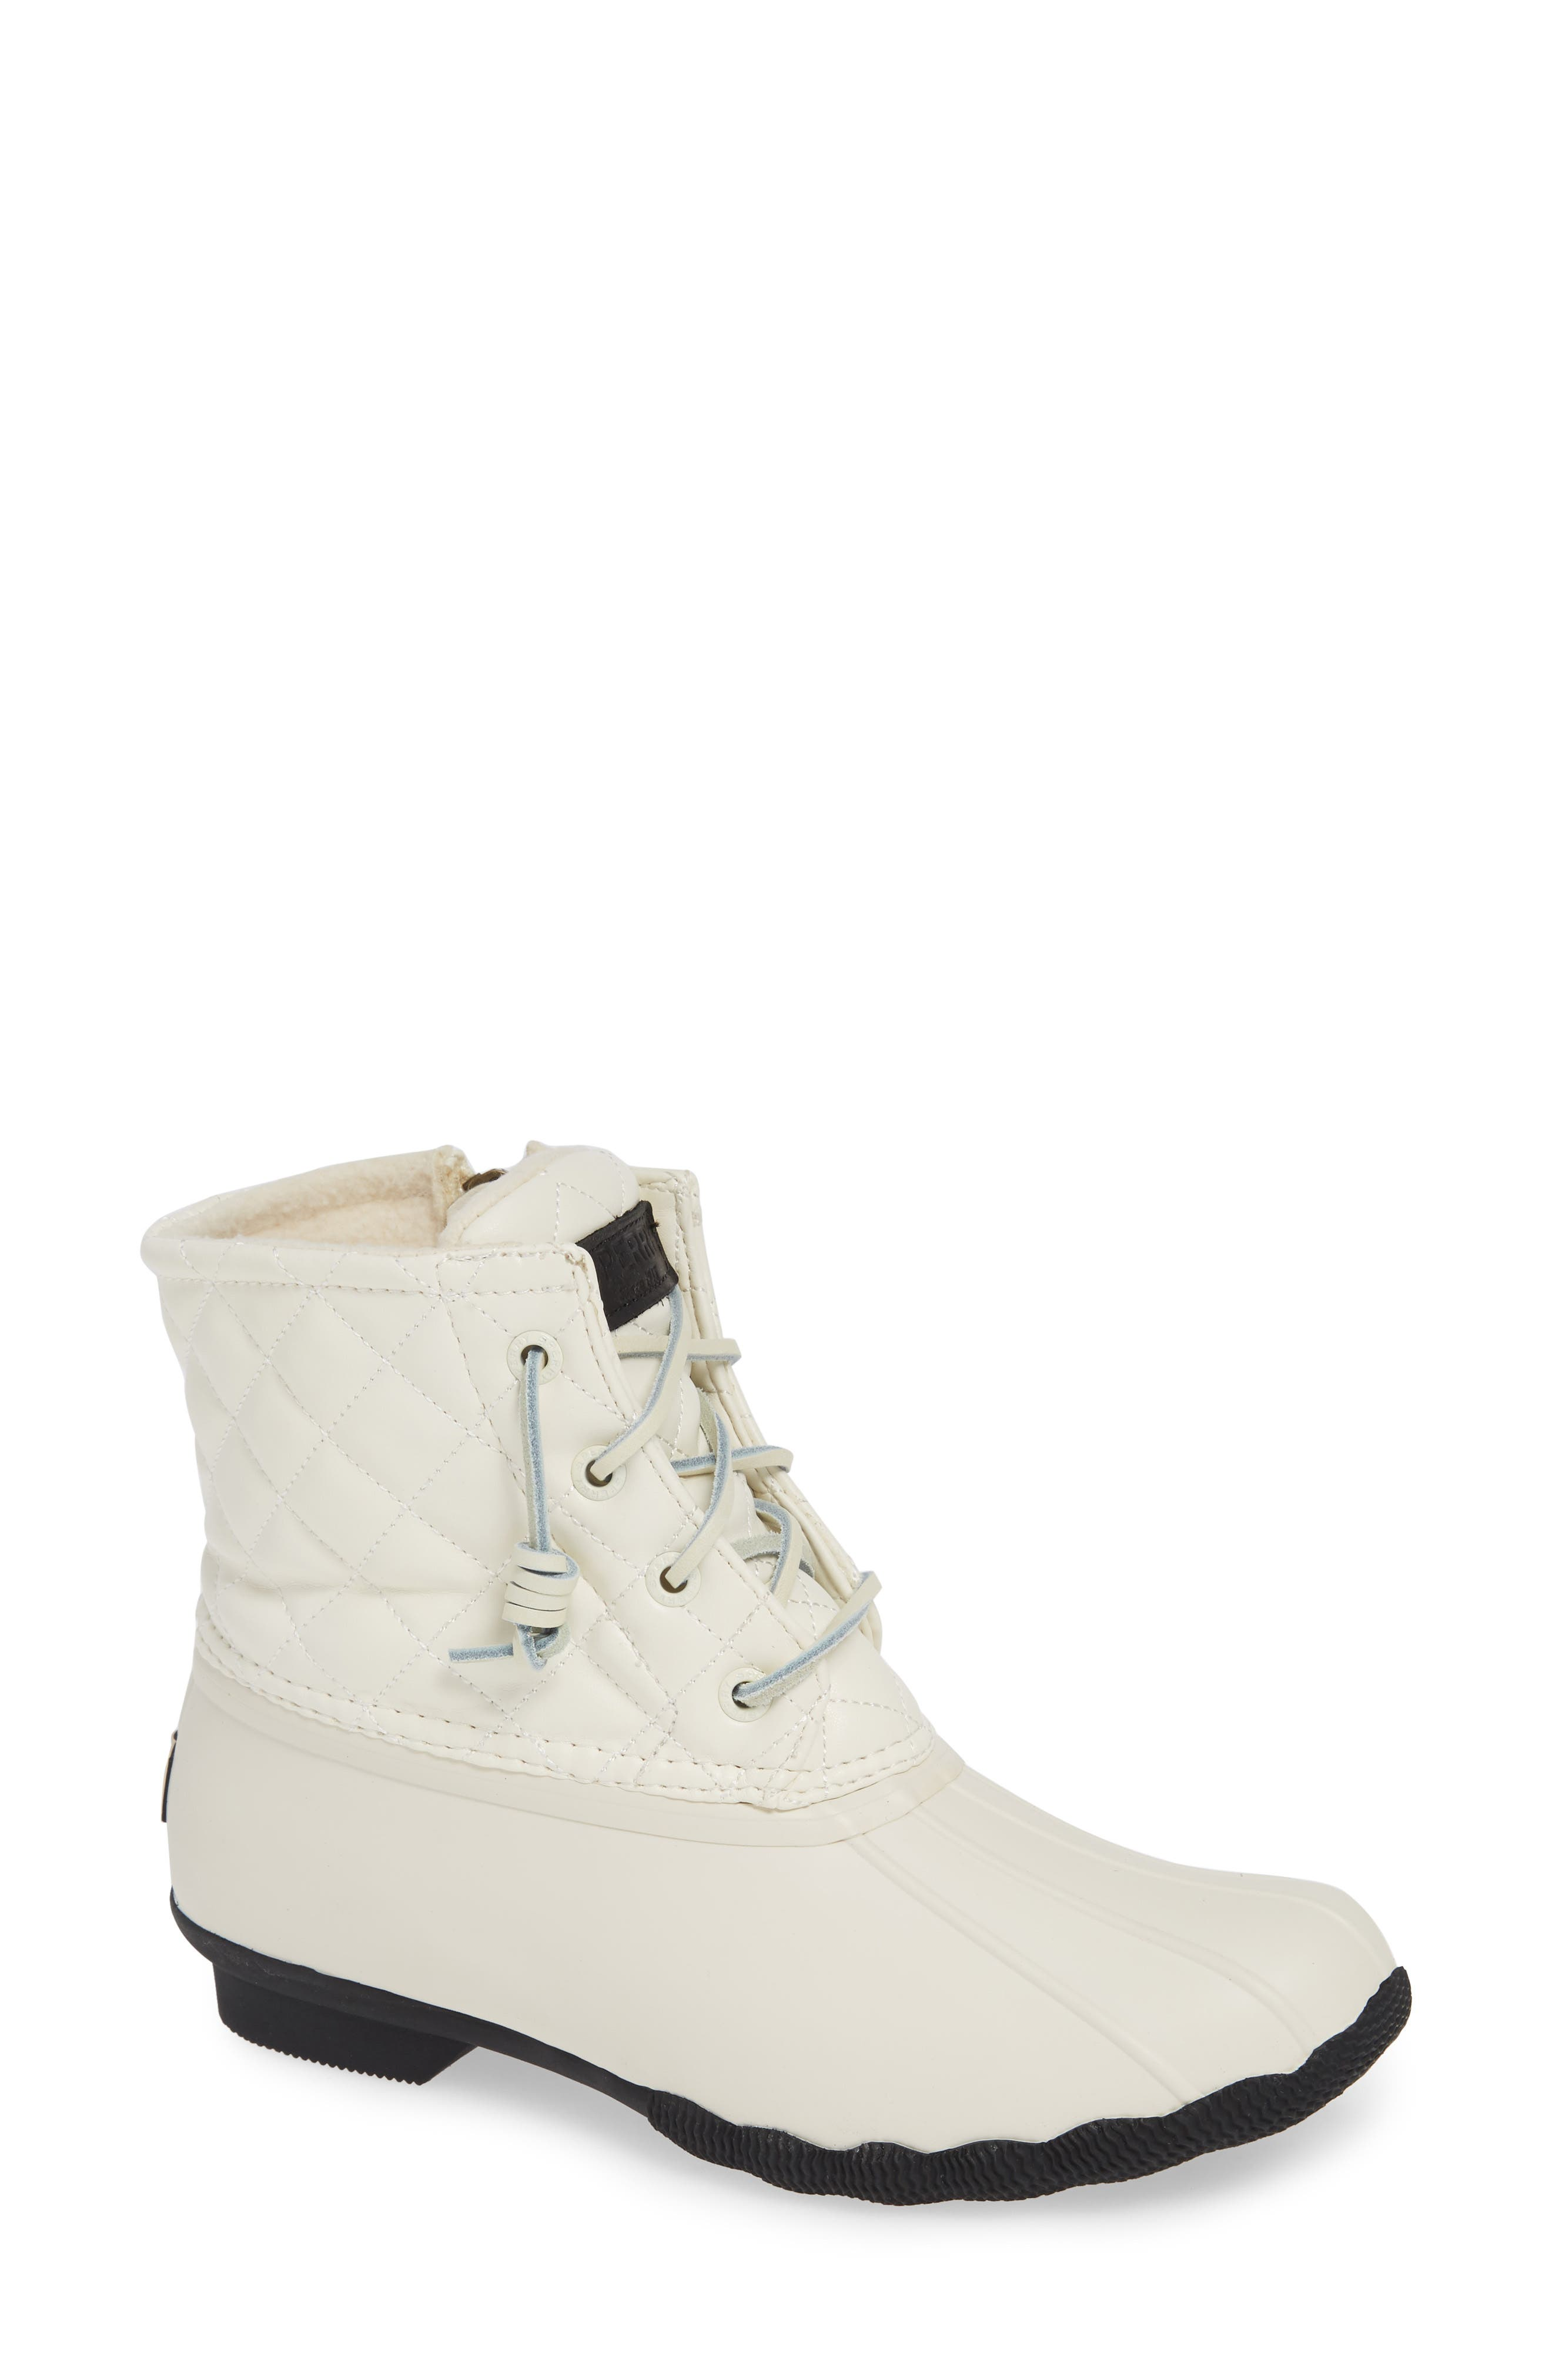 Quilted Luxe Saltwater Waterproof Bootie,                         Main,                         color, IVORY